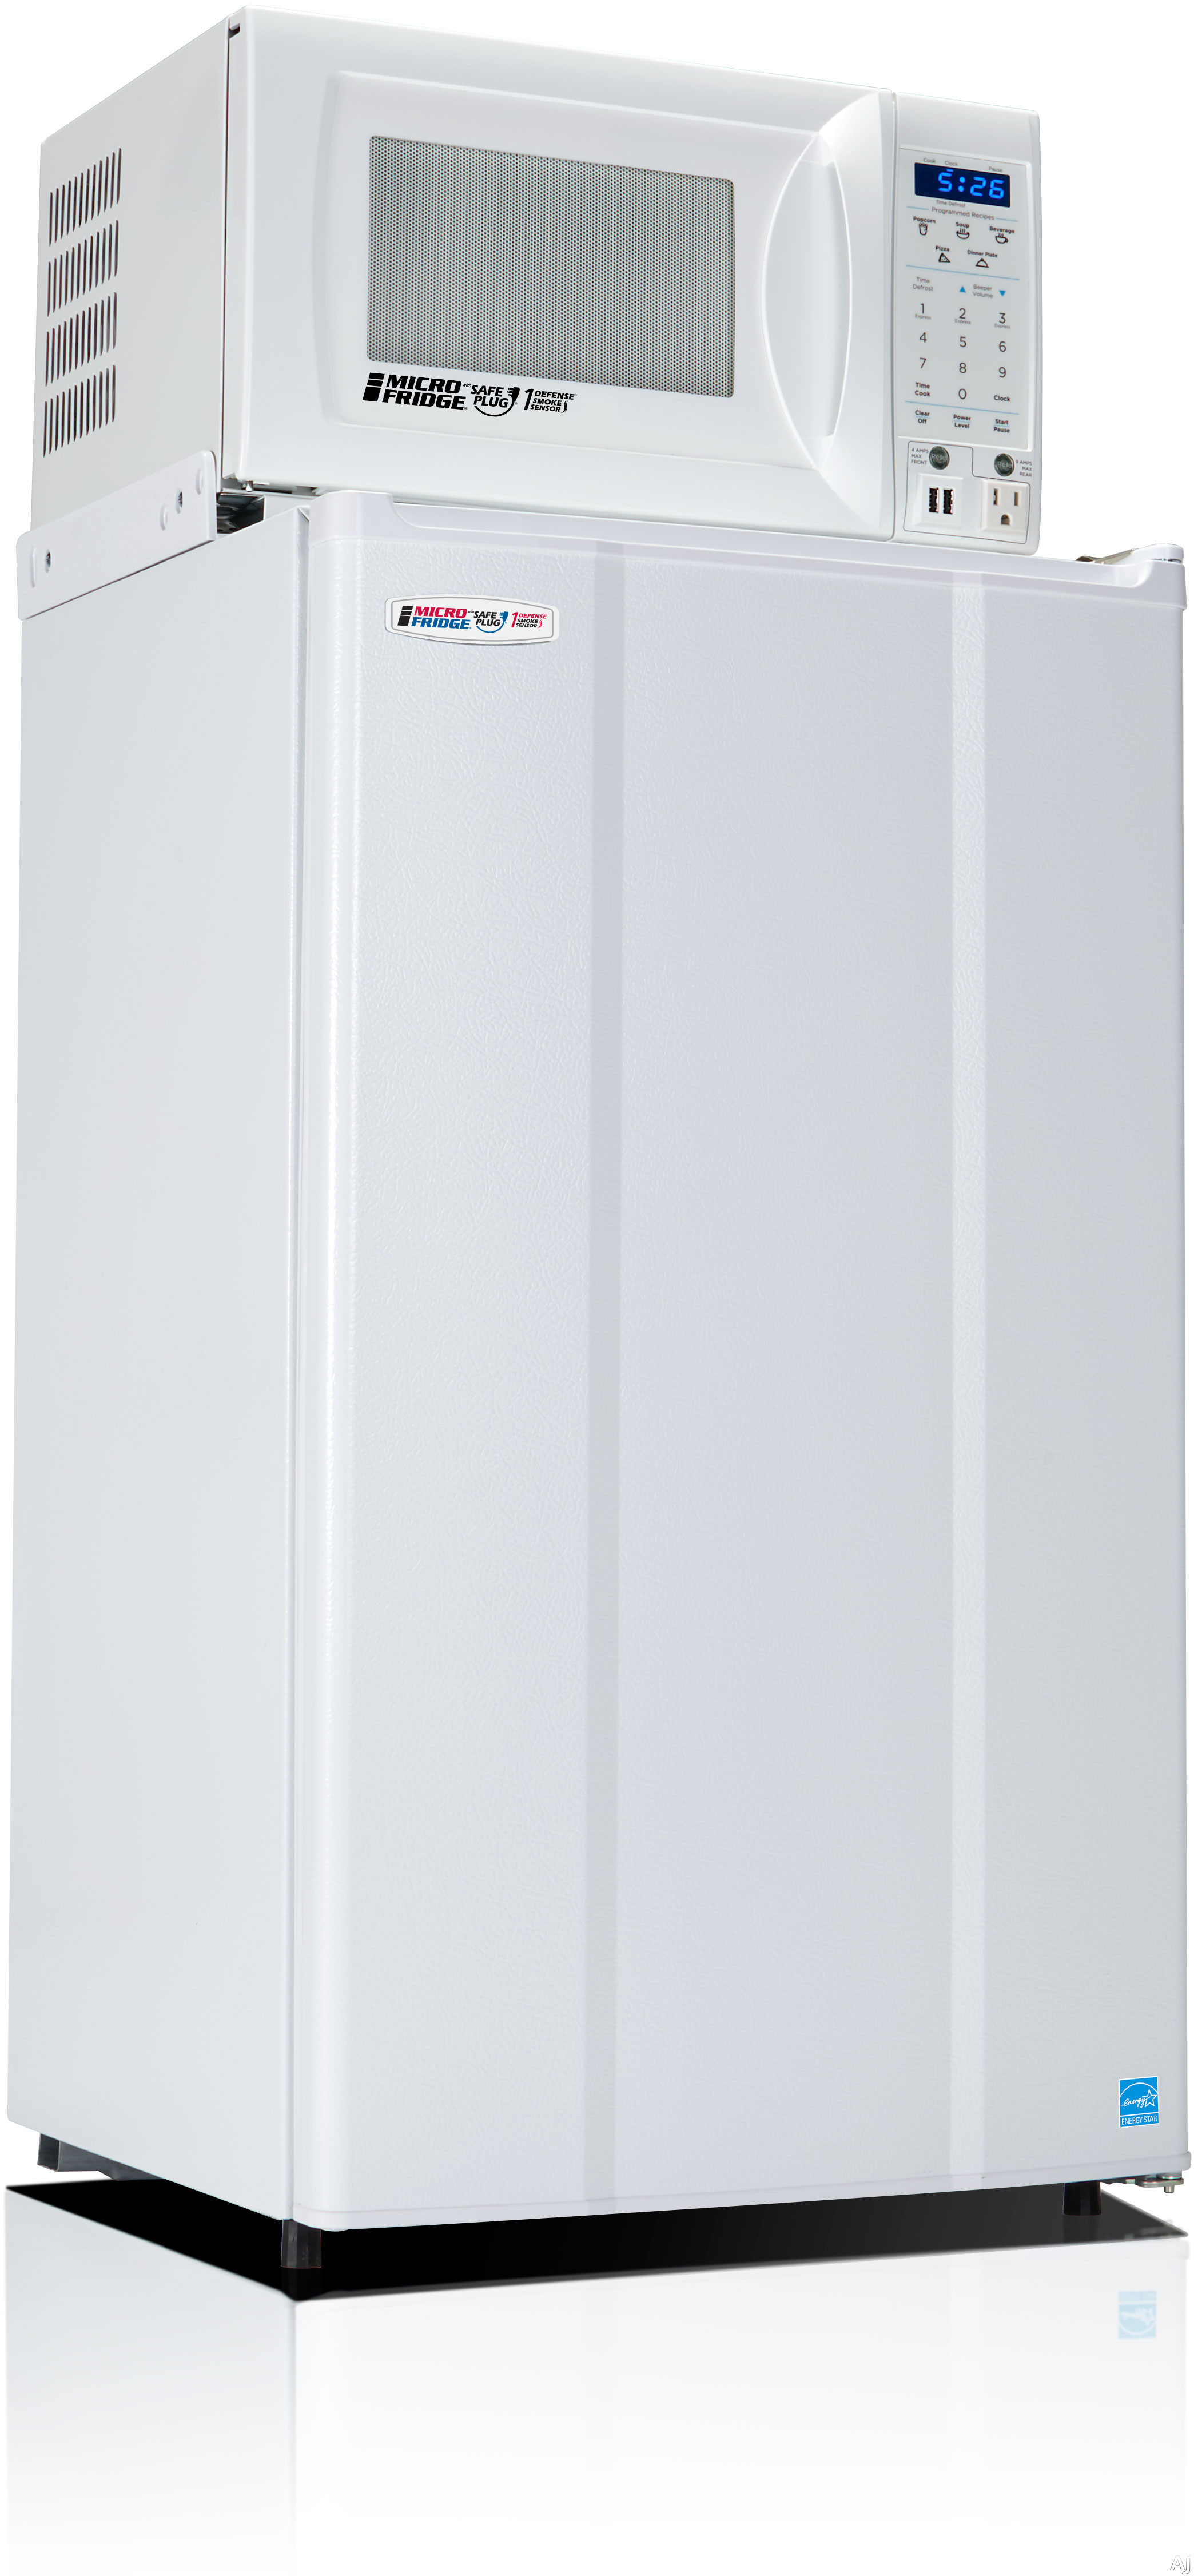 MicroFridge 36MF4A7D1W 3.6 cu. ft. Compact Refrigerator with Ice Compartment, Crisper Drawer, 700 Watt Microwave, 1st Defense Smoke Sensor, Safe Plug Technology, ENERGY STAR and USB/Outlet Charging Station: White